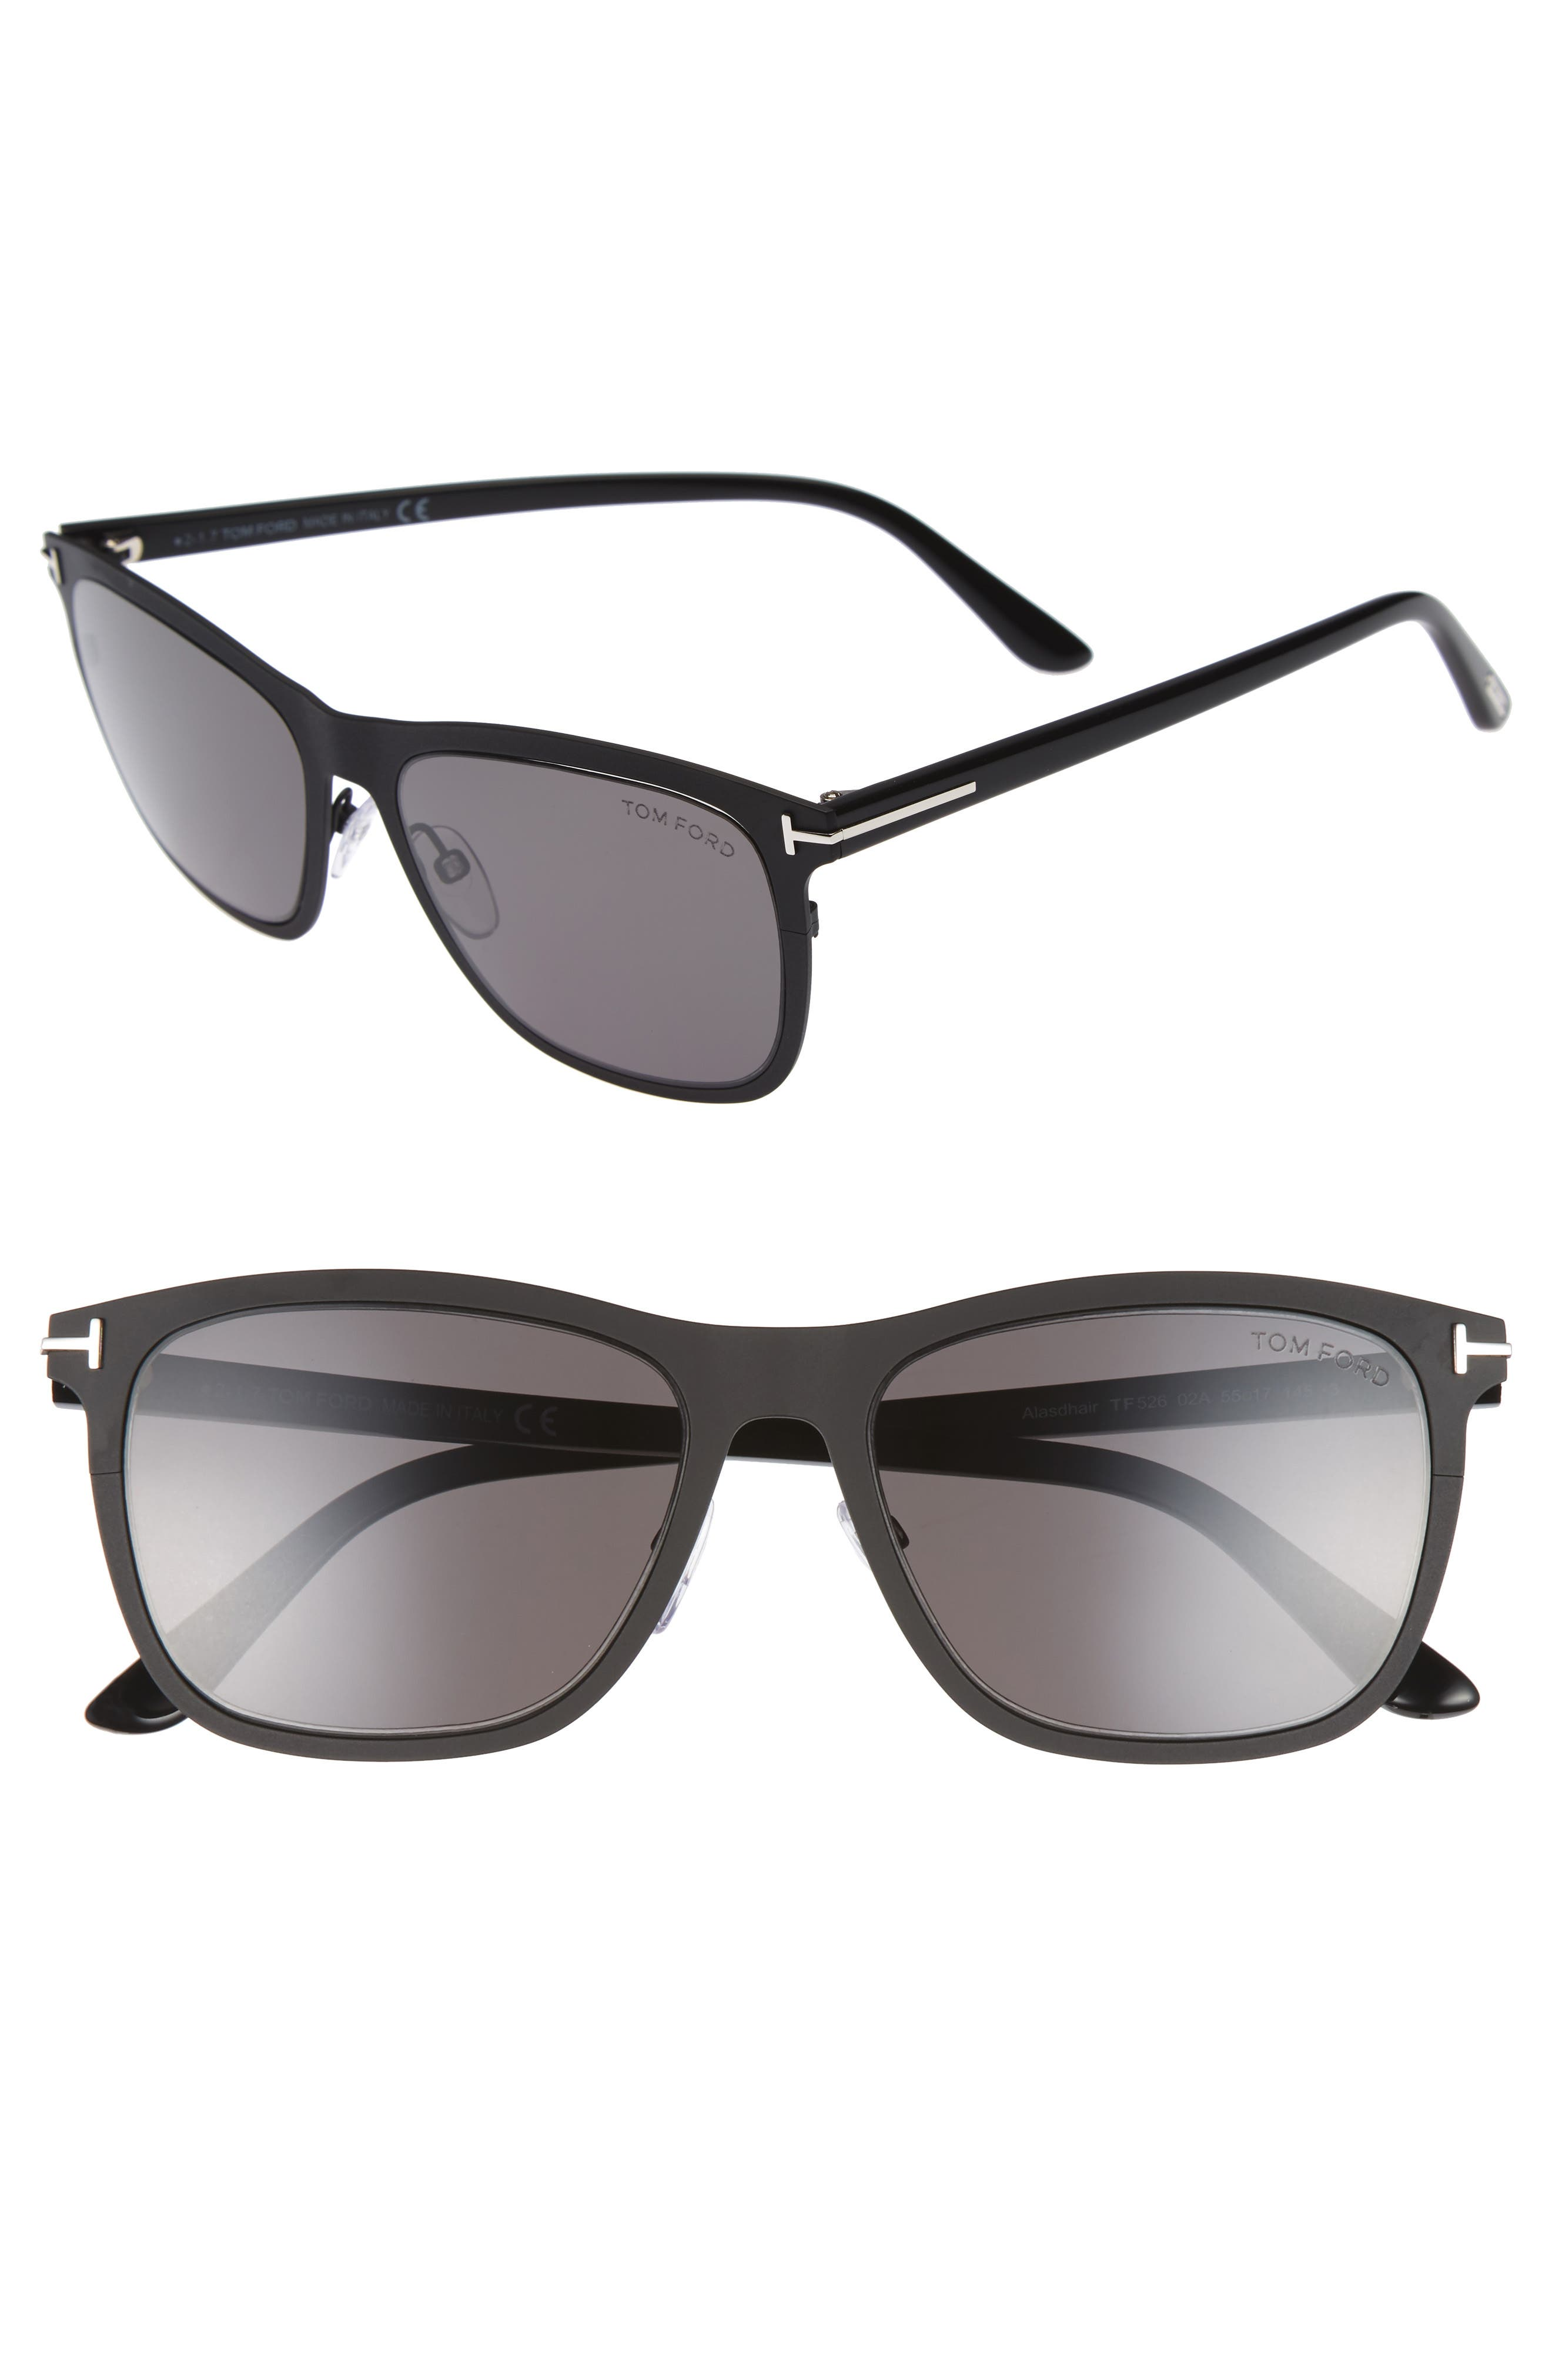 TOM FORD Alasdhair 55mm Sunglasses